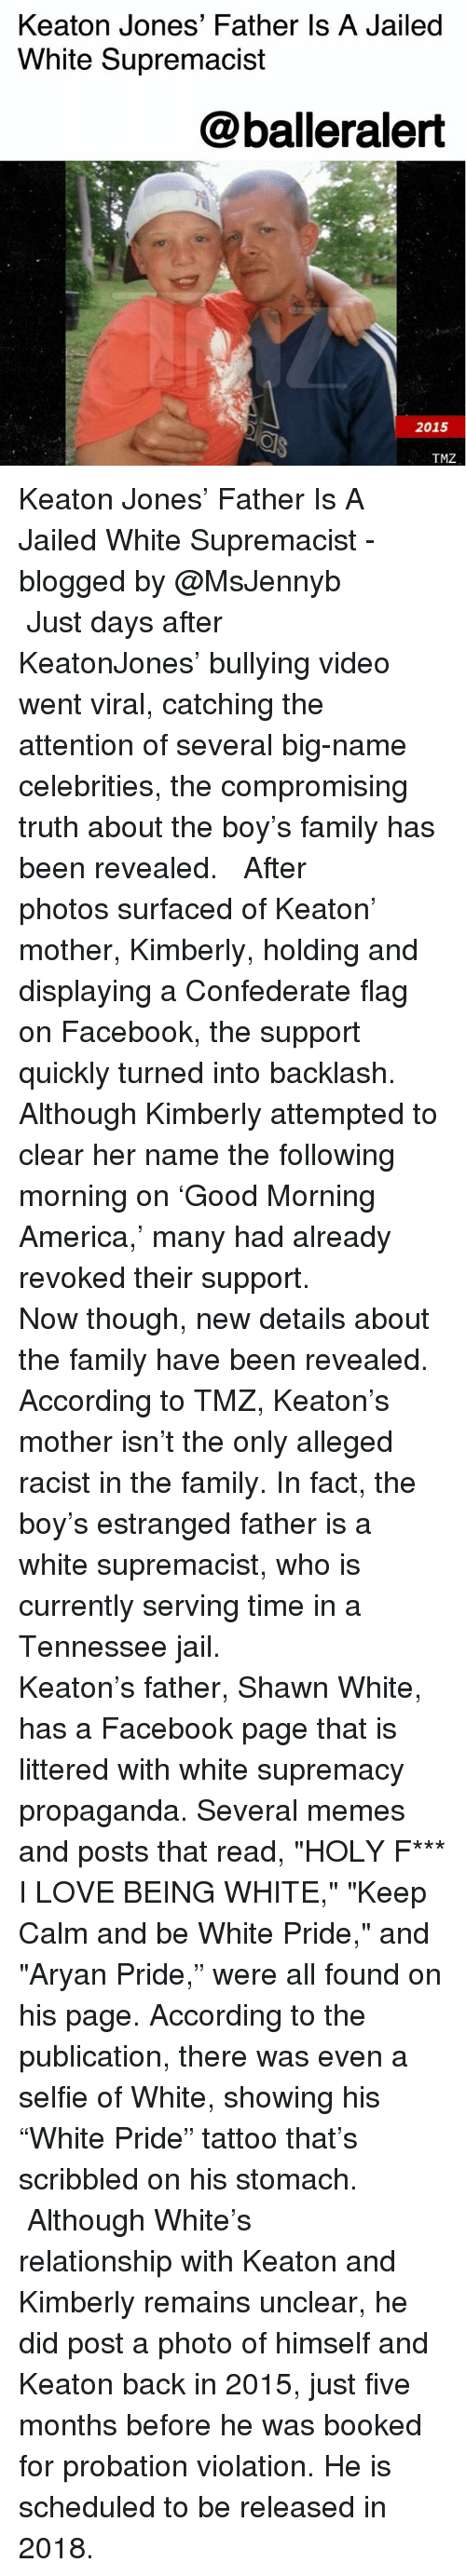 "America, Confederate Flag, and Facebook: Keaton Jones' Father Is A Jailed  White Supremacist  @balleralert  2015  TMZ Keaton Jones' Father Is A Jailed White Supremacist - blogged by @MsJennyb ⠀⠀⠀⠀⠀⠀⠀ ⠀⠀⠀⠀⠀⠀⠀ Just days after KeatonJones' bullying video went viral, catching the attention of several big-name celebrities, the compromising truth about the boy's family has been revealed. ⠀⠀⠀⠀⠀⠀⠀ ⠀⠀⠀⠀⠀⠀⠀ After photos surfaced of Keaton' mother, Kimberly, holding and displaying a Confederate flag on Facebook, the support quickly turned into backlash. Although Kimberly attempted to clear her name the following morning on 'Good Morning America,' many had already revoked their support. ⠀⠀⠀⠀⠀⠀⠀ ⠀⠀⠀⠀⠀⠀⠀ Now though, new details about the family have been revealed. According to TMZ, Keaton's mother isn't the only alleged racist in the family. In fact, the boy's estranged father is a white supremacist, who is currently serving time in a Tennessee jail. ⠀⠀⠀⠀⠀⠀⠀ ⠀⠀⠀⠀⠀⠀⠀ Keaton's father, Shawn White, has a Facebook page that is littered with white supremacy propaganda. Several memes and posts that read, ""HOLY F*** I LOVE BEING WHITE,"" ""Keep Calm and be White Pride,"" and ""Aryan Pride,"" were all found on his page. According to the publication, there was even a selfie of White, showing his ""White Pride"" tattoo that's scribbled on his stomach. ⠀⠀⠀⠀⠀⠀⠀ ⠀⠀⠀⠀⠀⠀⠀ Although White's relationship with Keaton and Kimberly remains unclear, he did post a photo of himself and Keaton back in 2015, just five months before he was booked for probation violation. He is scheduled to be released in 2018."